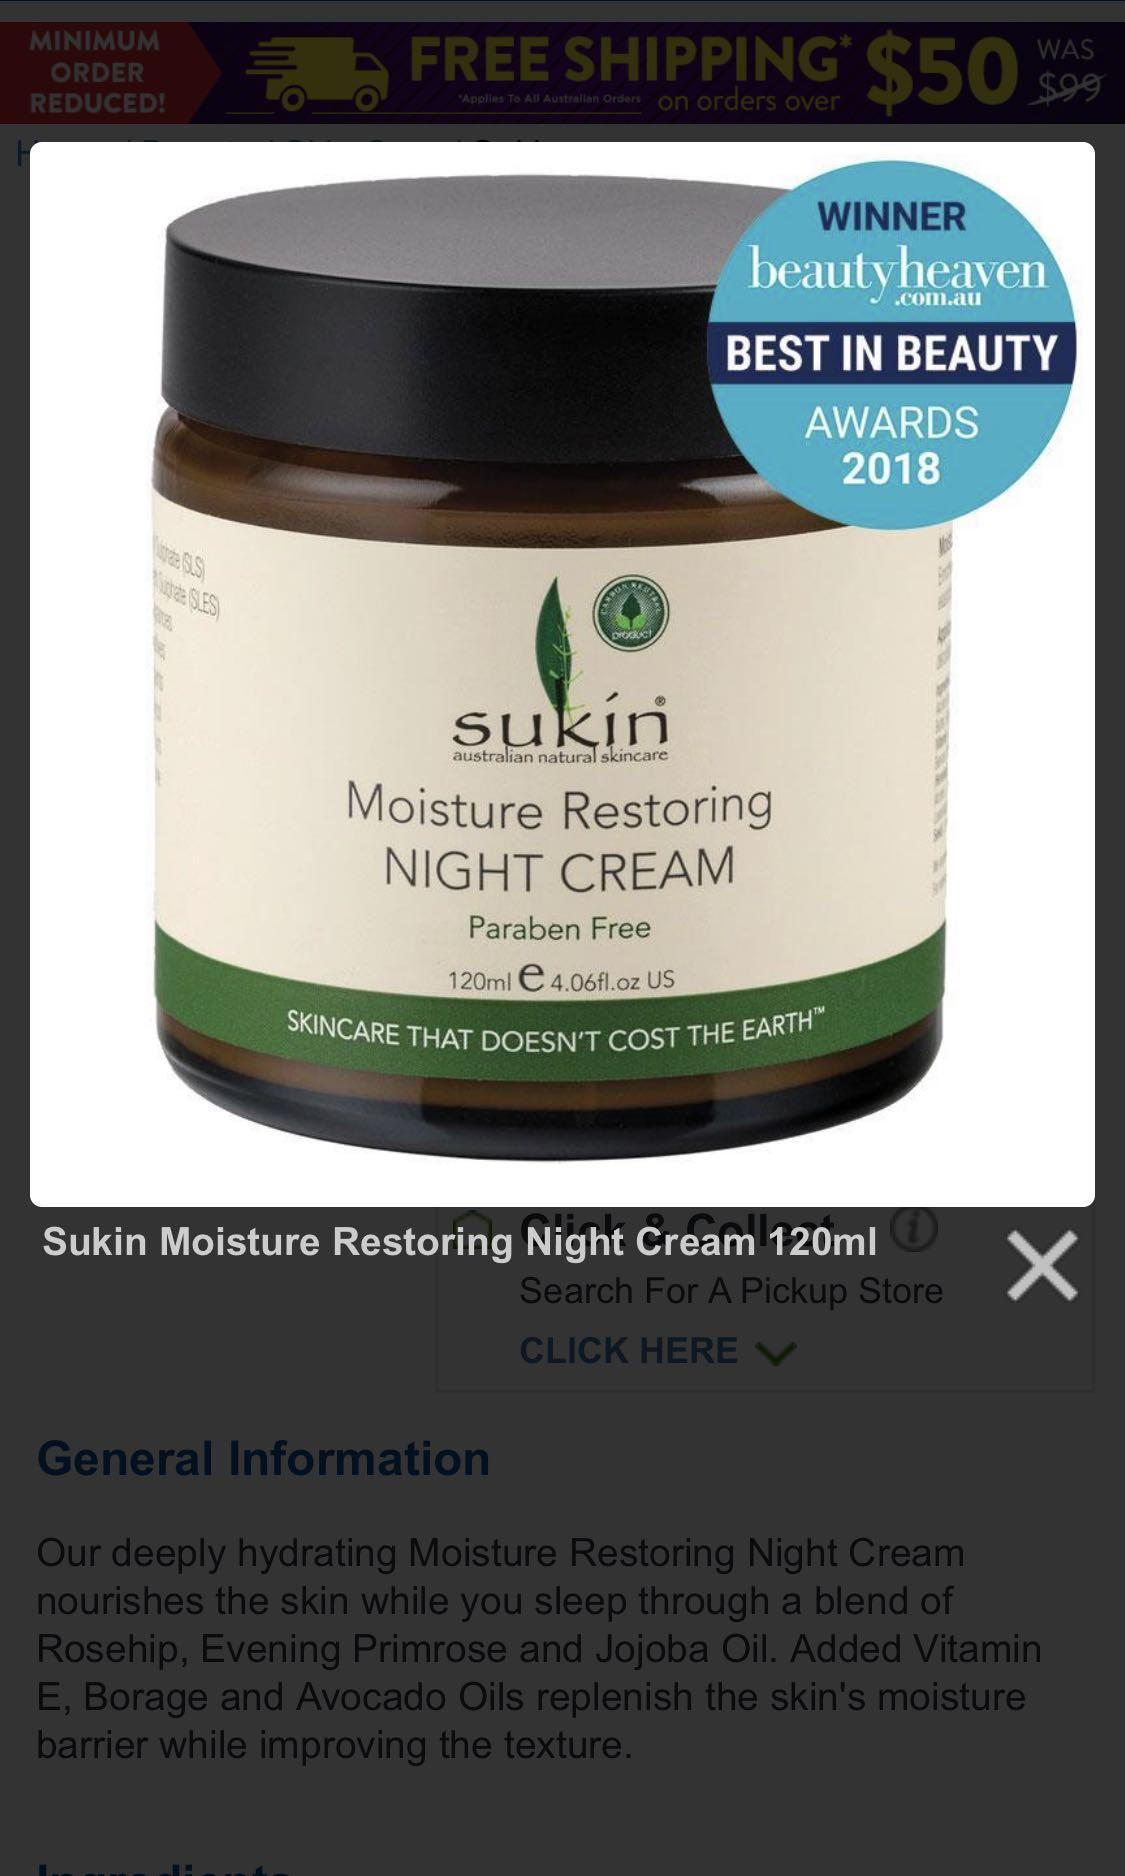 Sukin moisture restoring night cream